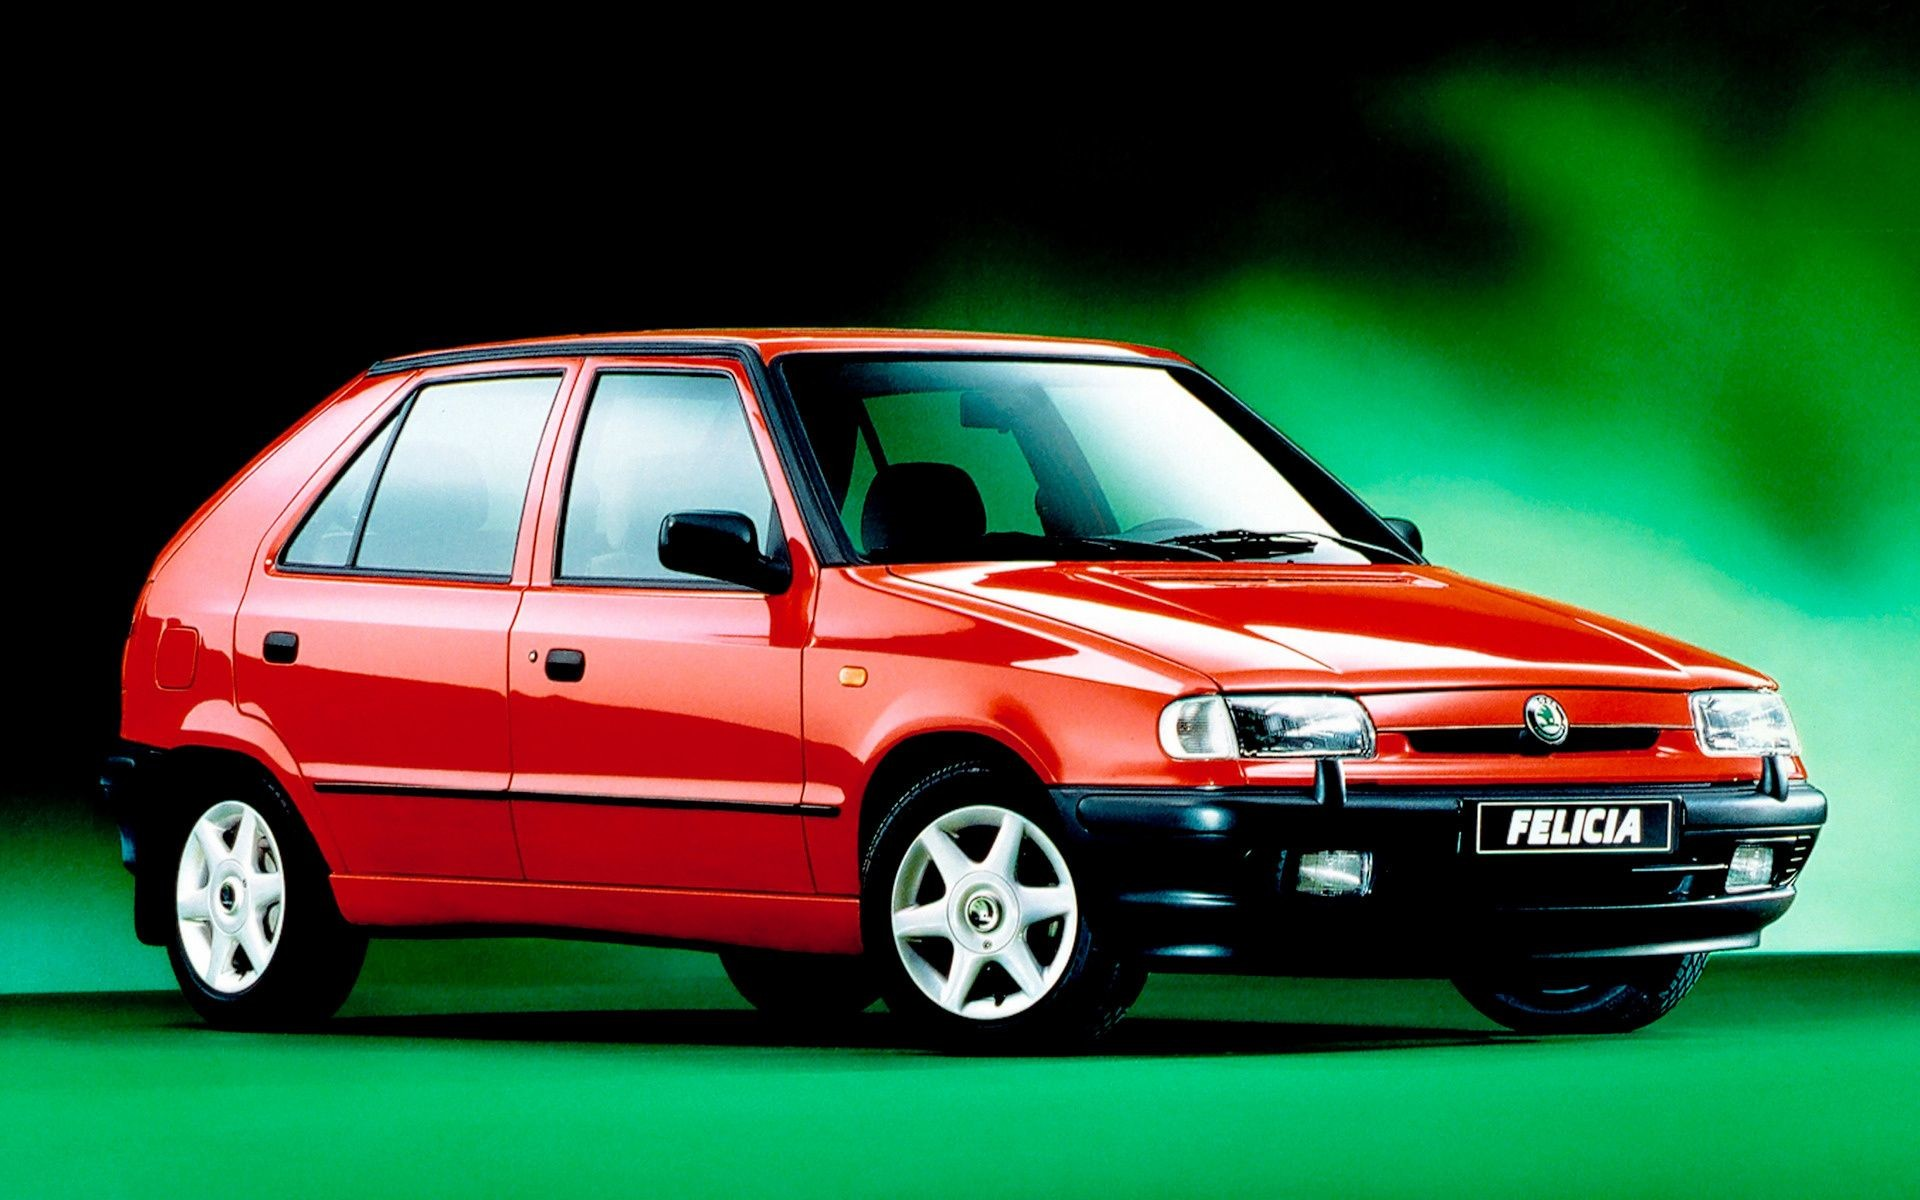 Res: 1920x1200, Skoda Felicia Wallpaper HD Photos, Wallpapers and other Images .